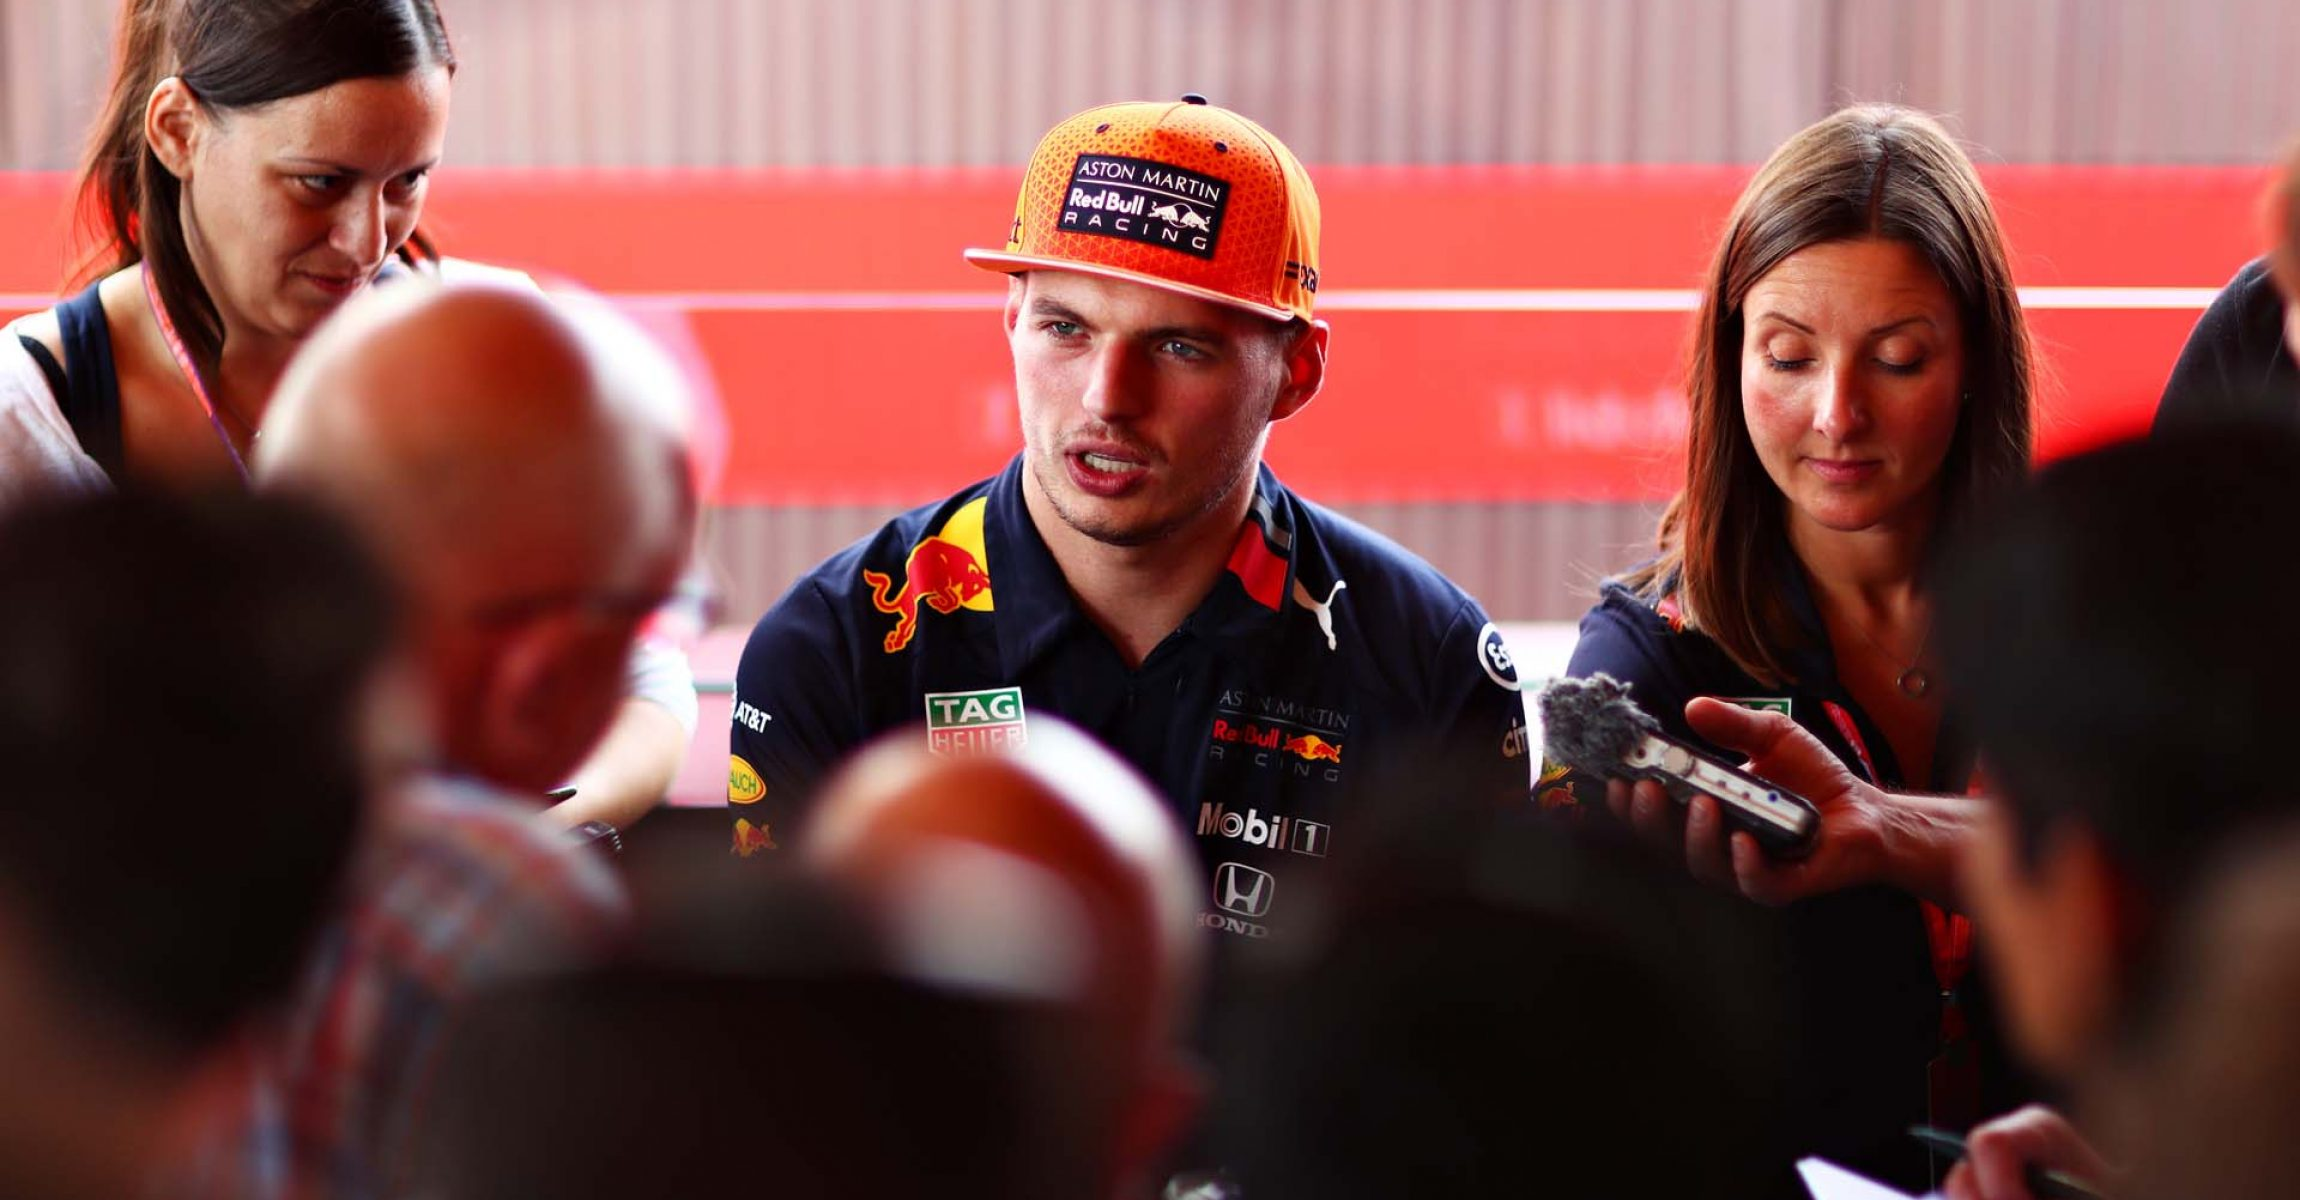 MONZA, ITALY - SEPTEMBER 05: Max Verstappen of Netherlands and Red Bull Racing talks to the media in the Paddock during previews ahead of the F1 Grand Prix of Italy at Autodromo di Monza on September 05, 2019 in Monza, Italy. (Photo by Dan Istitene/Getty Images) // Getty Images / Red Bull Content Pool // AP-21FTKEY8N1W11 // Usage for editorial use only //